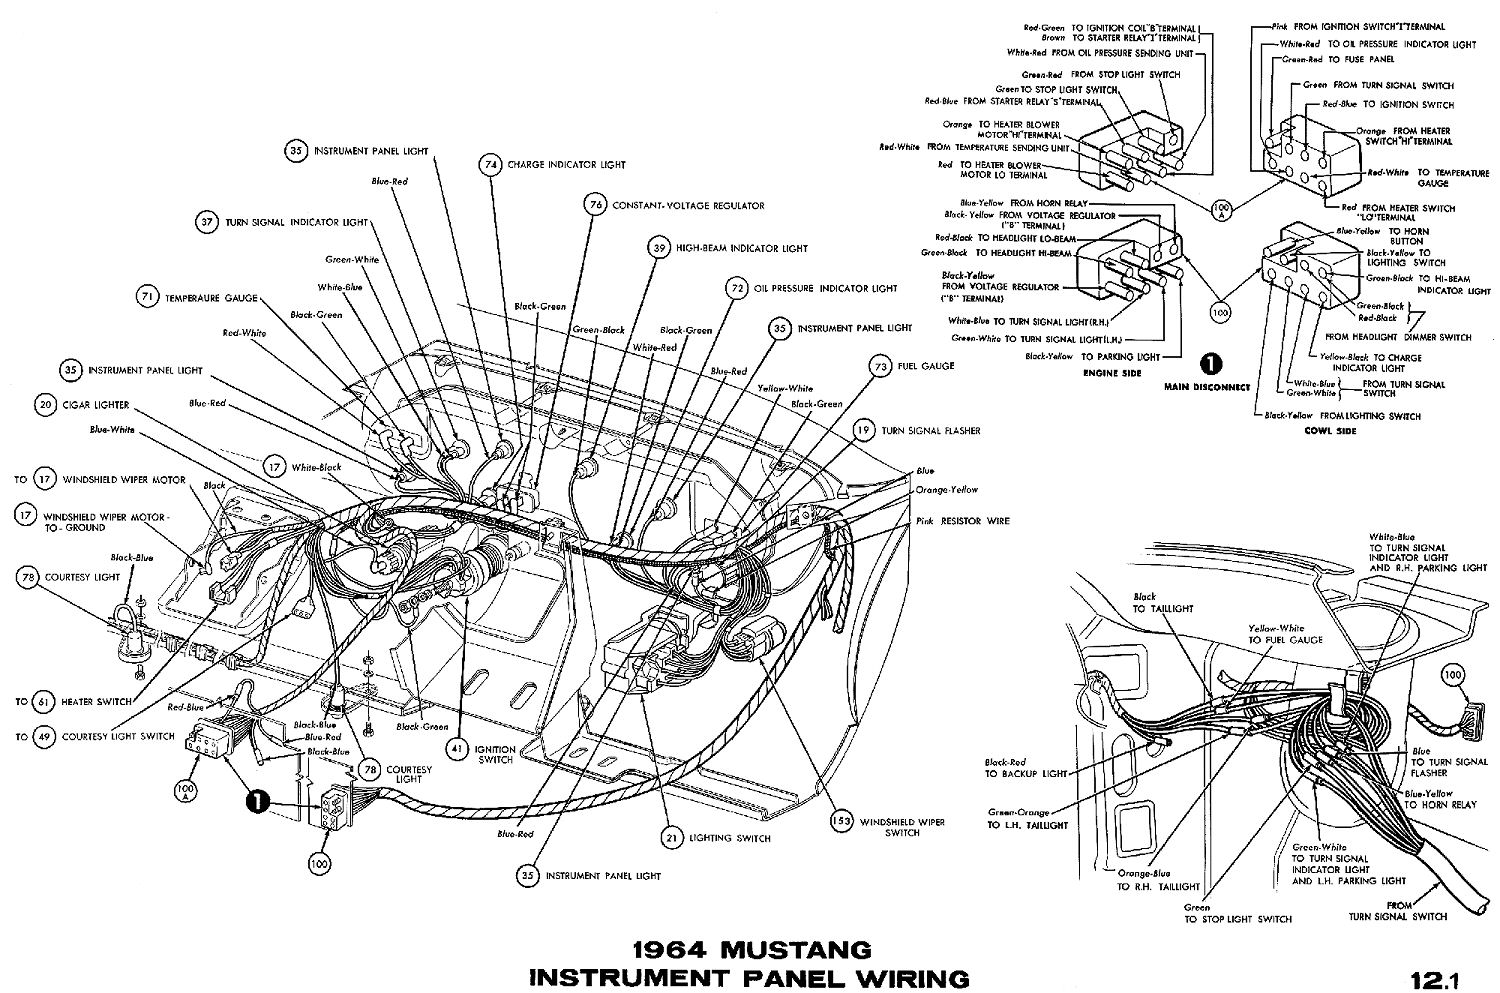 1966 mustang dash light wiring diagram xmas lights 1964 diagrams average joe restoration